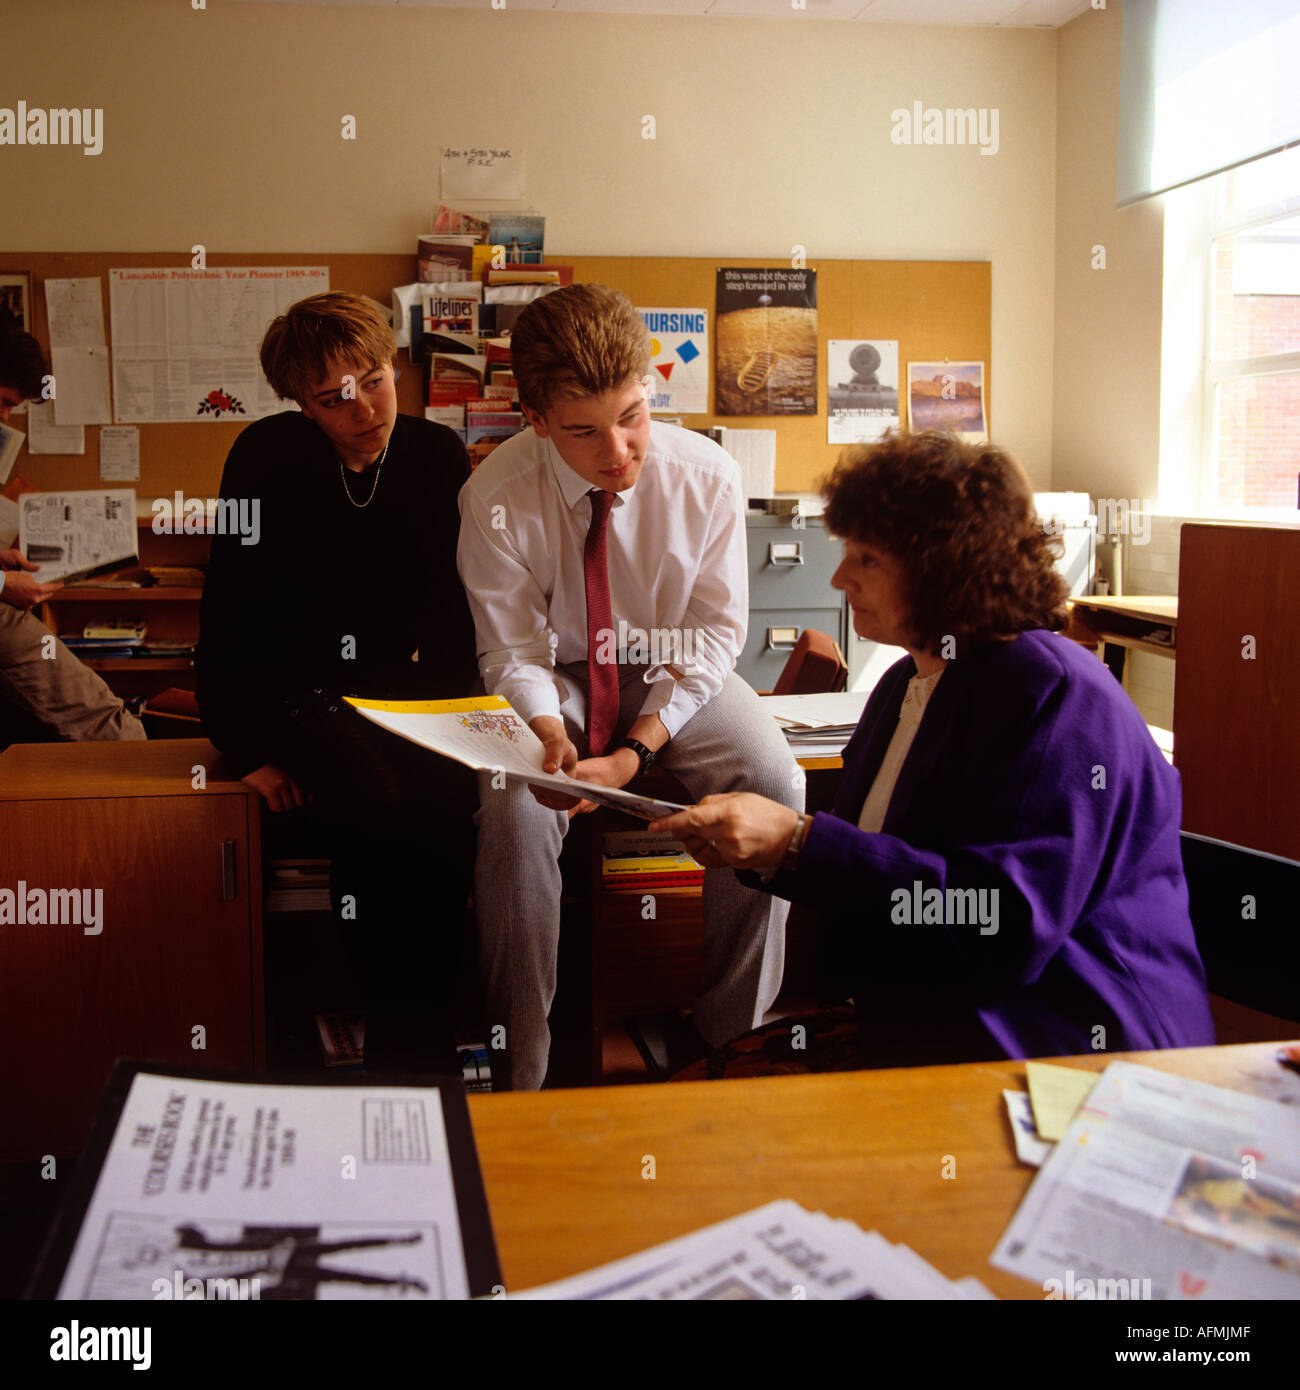 Education Careers Advice in school office - Stock Image